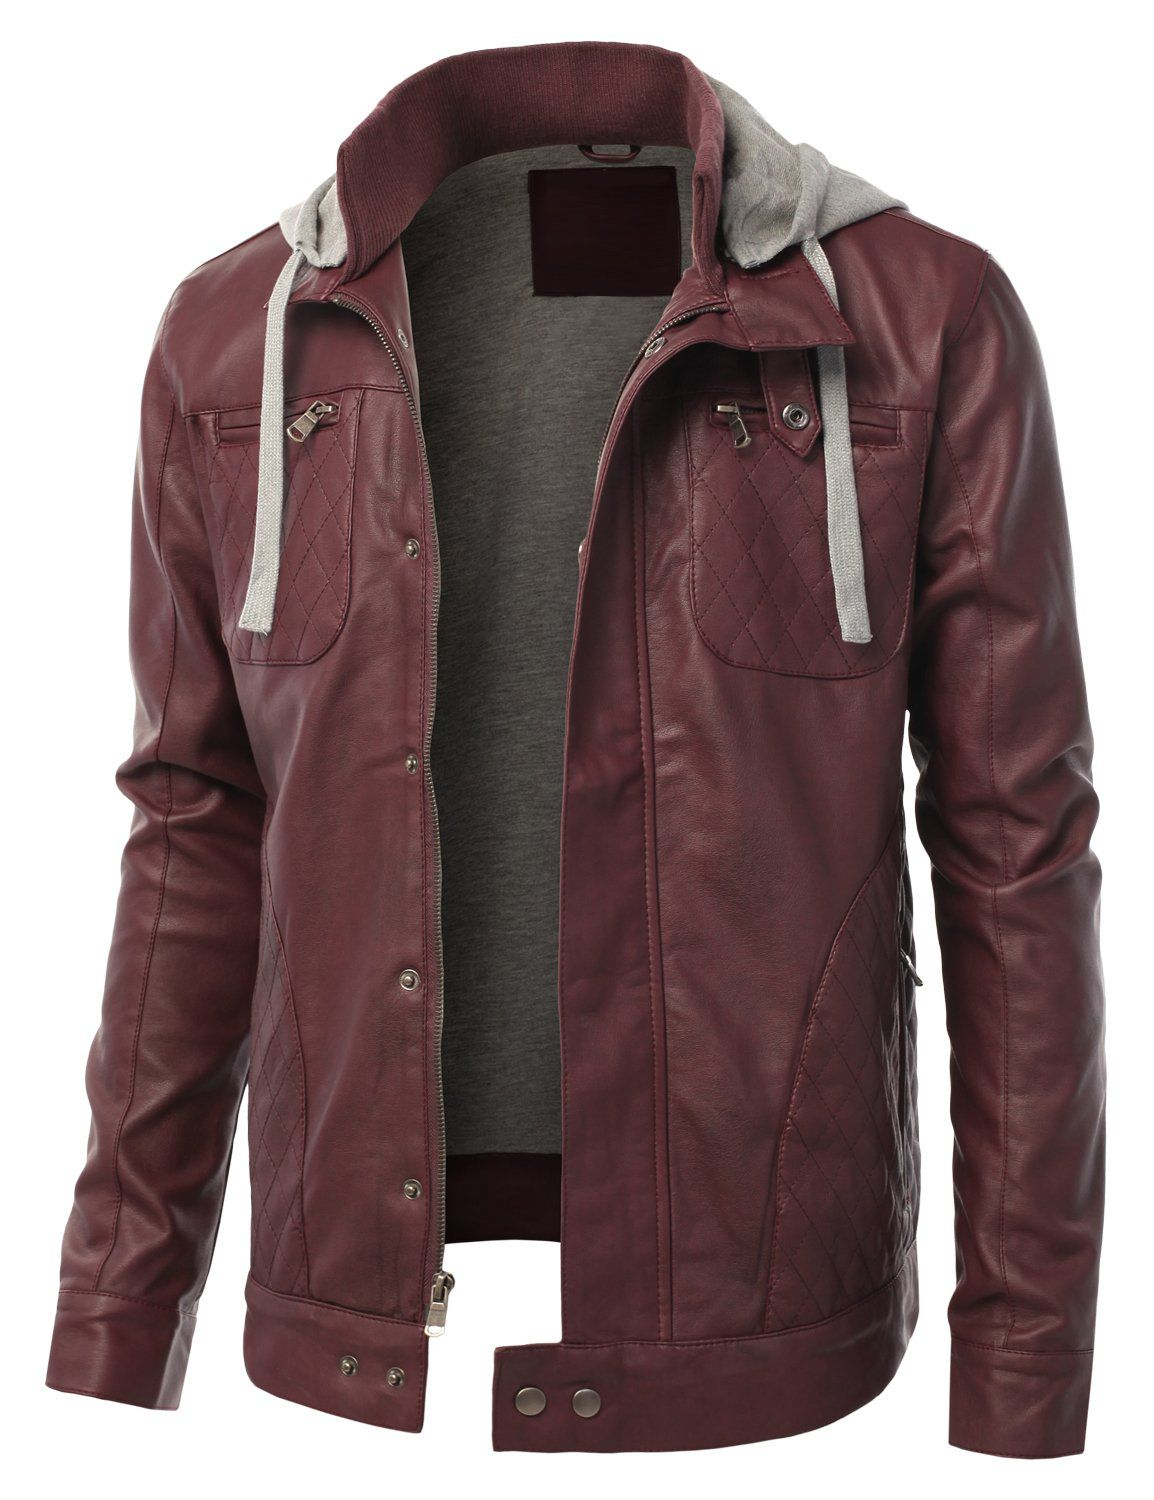 Dressforless Men S Faux Leather Jacket With Quilted Pattern Burgundy S Fpf 30 Faux Leather Jacket Men Mens Outfits Leather Outerwear [ 1500 x 1154 Pixel ]